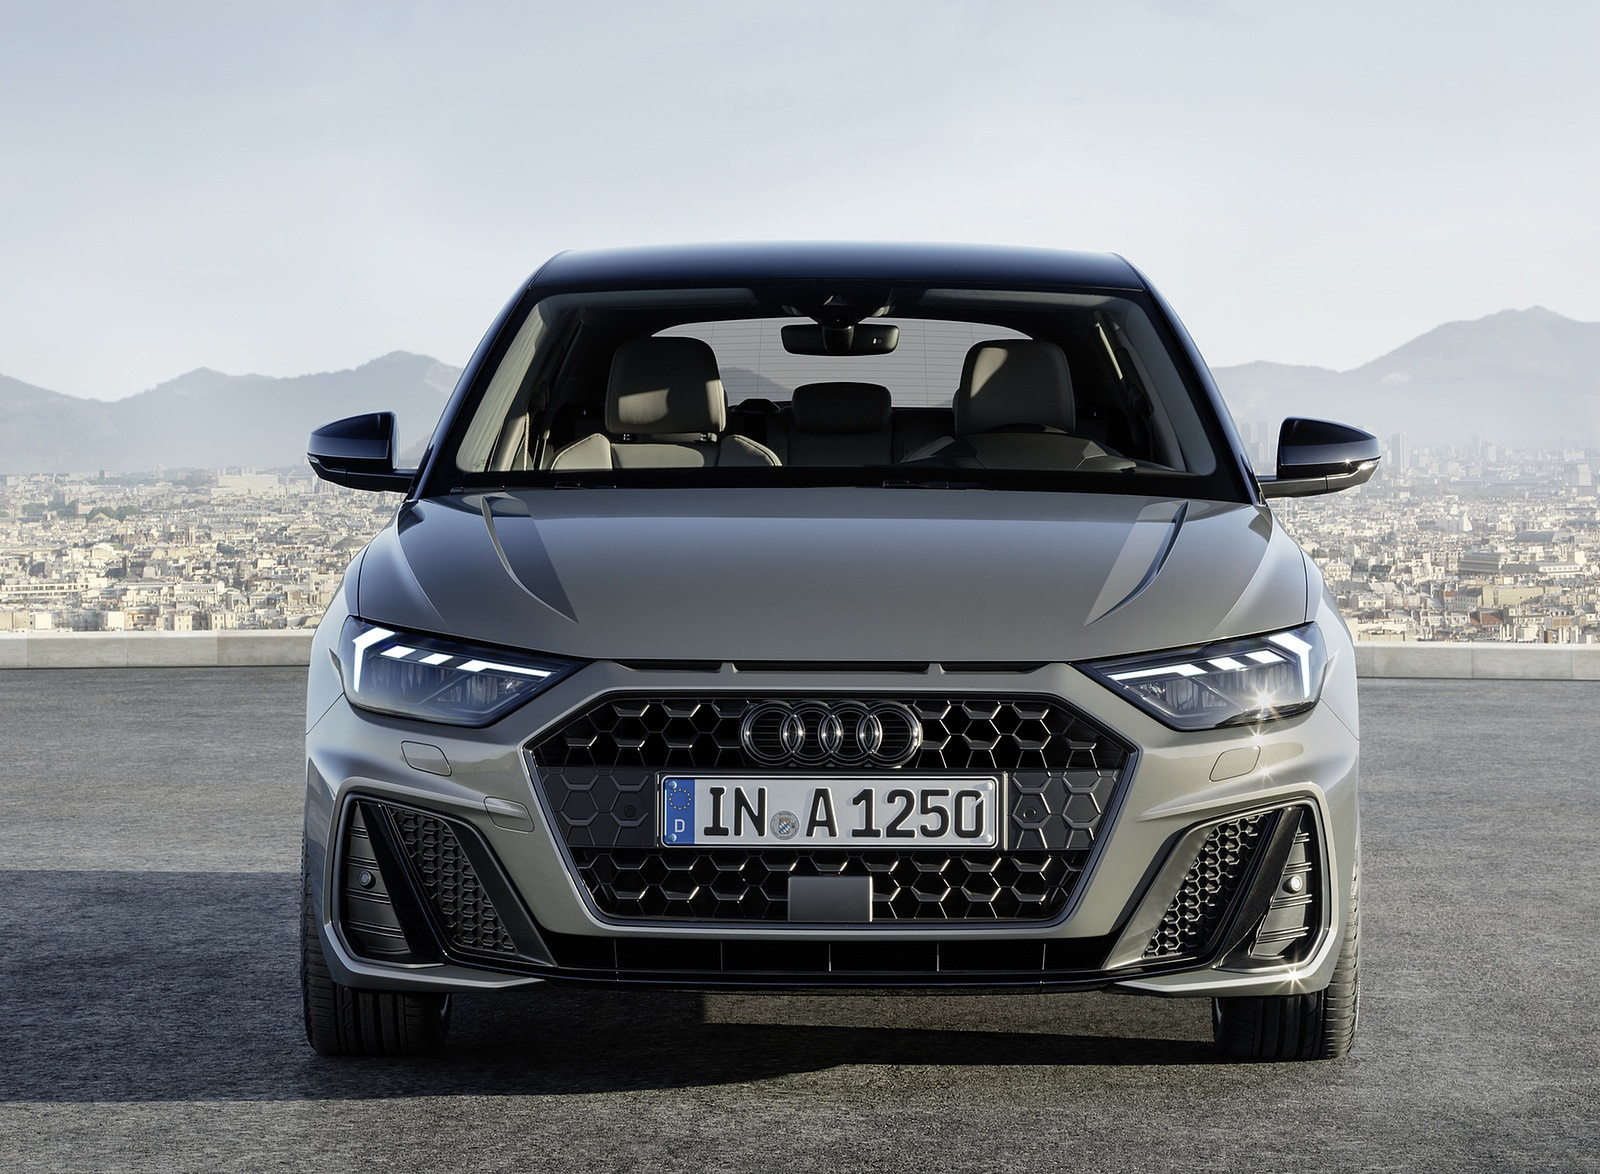 2019 Audi A1 Sportback Wallpapers 31 Hd Images Newcarcars